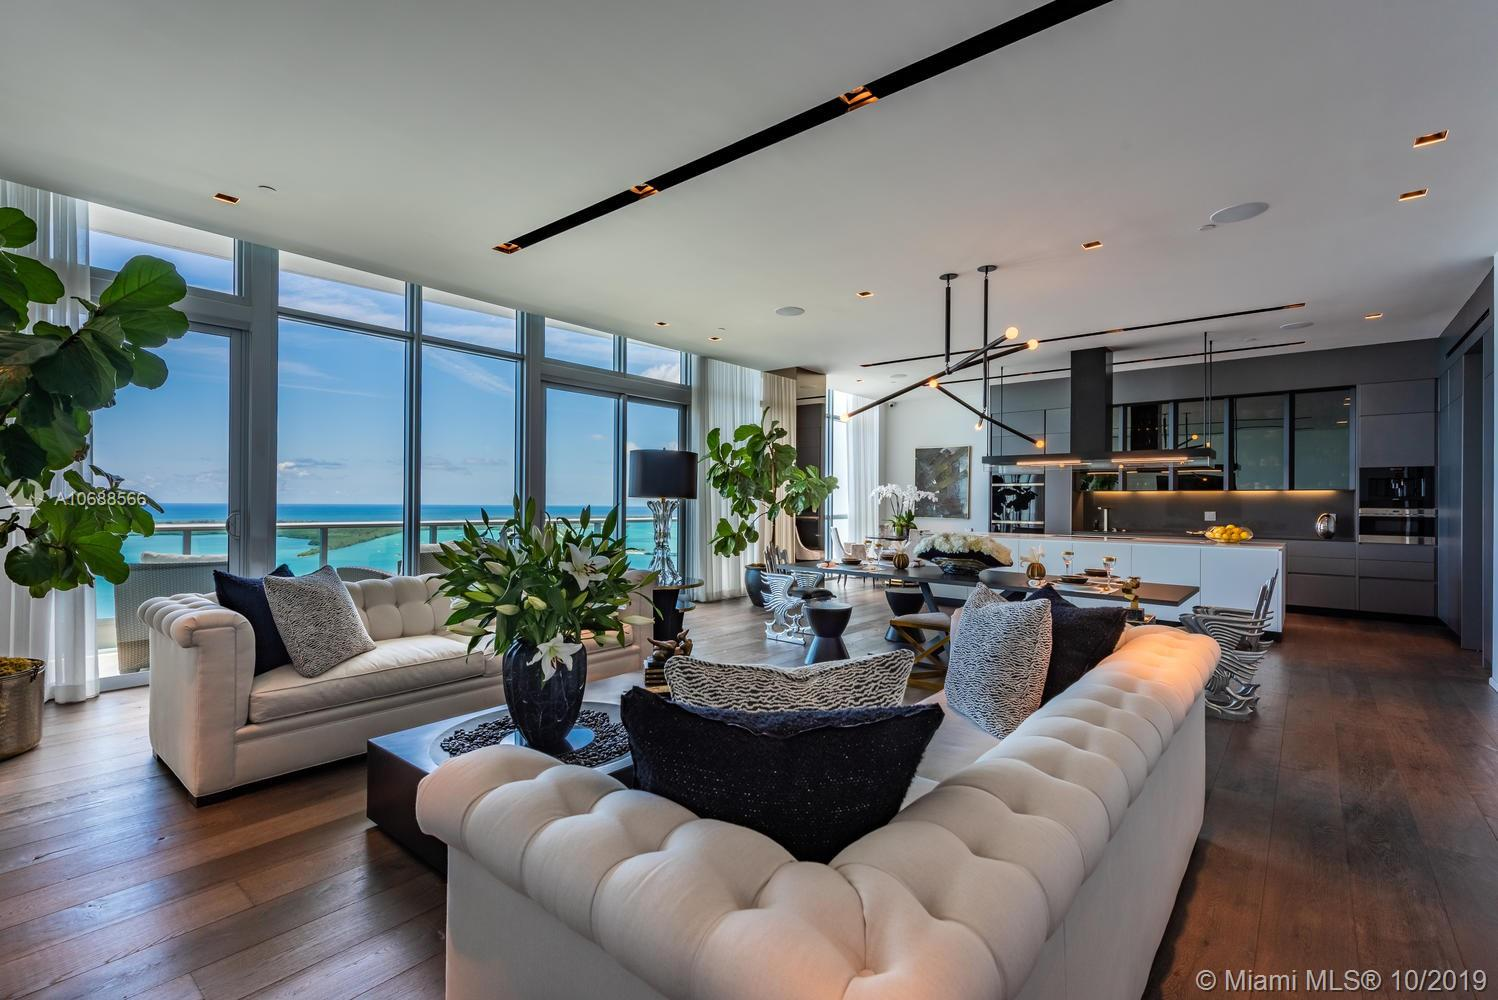 1331 Brickell bay dr-PH4707 miami-fl-33131-a10688566-Pic04